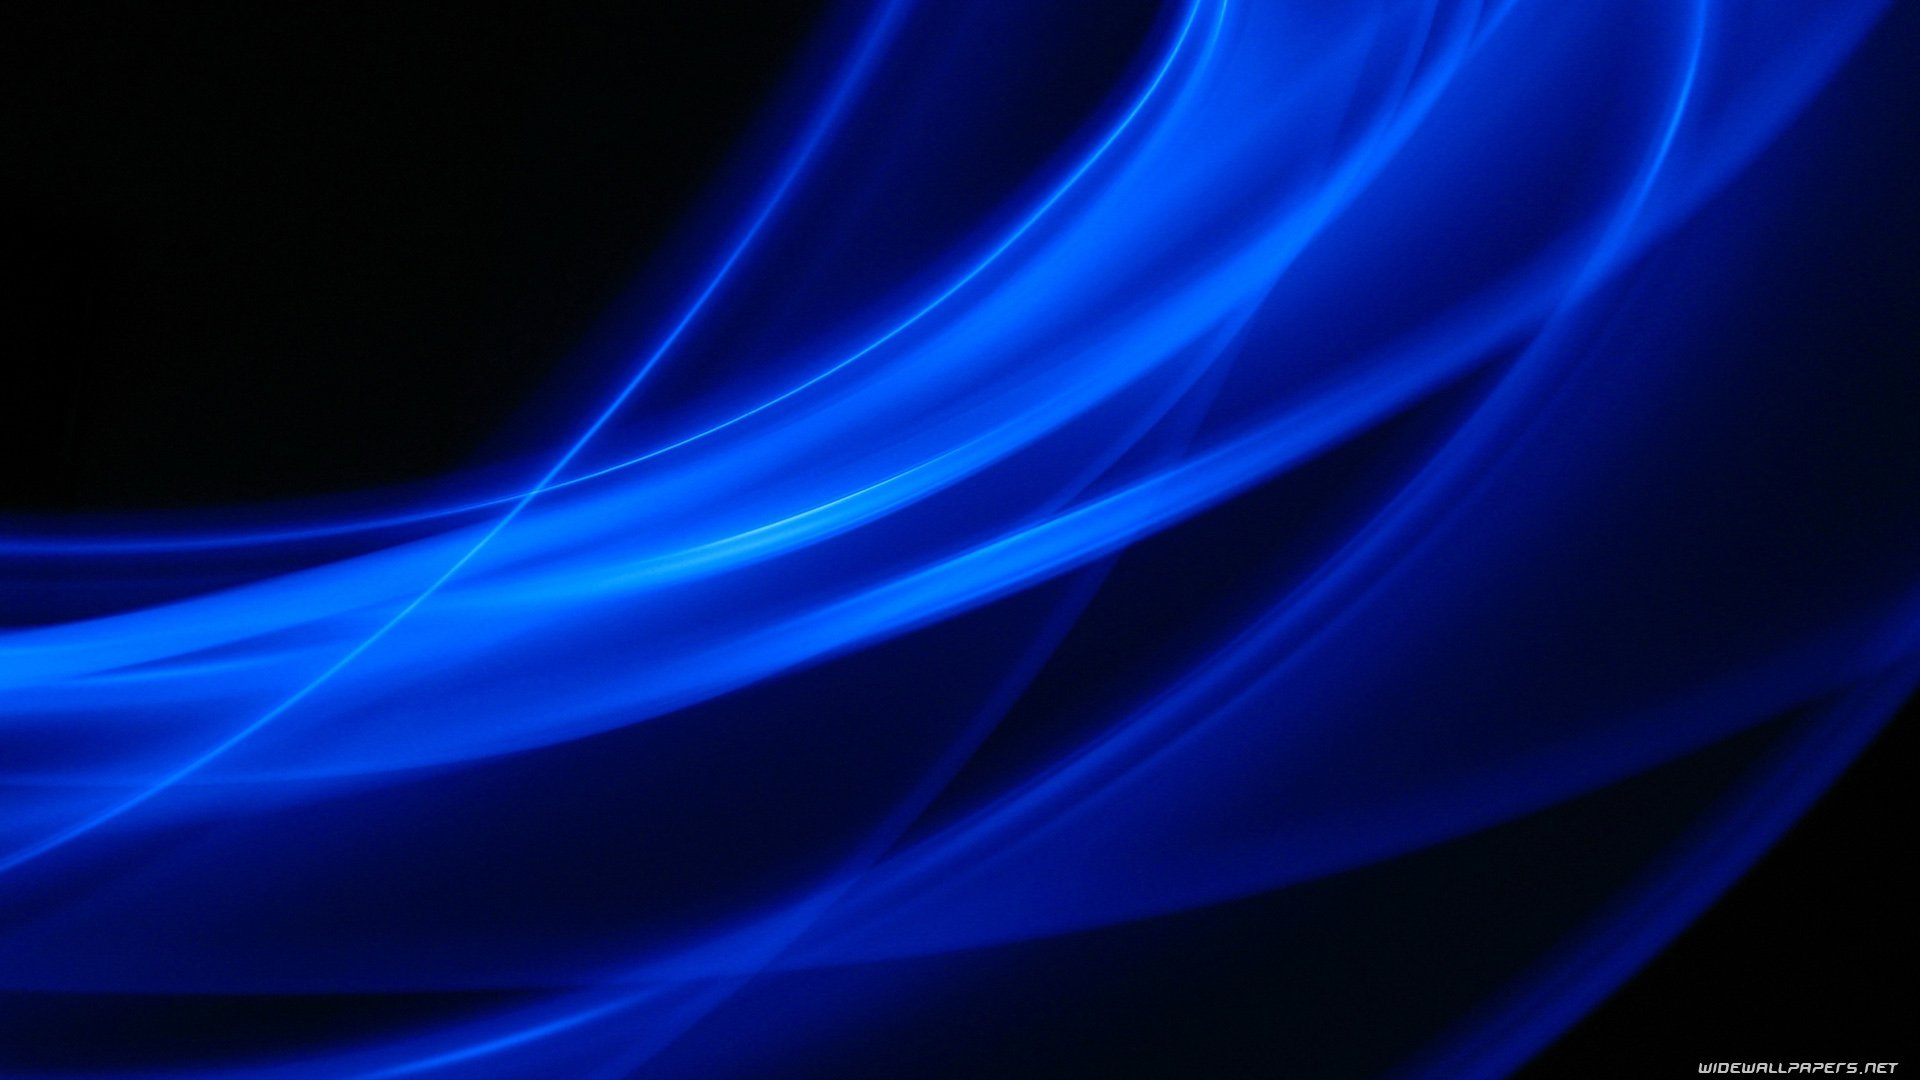 black and blue abstract wallpaper - wallpapersafari